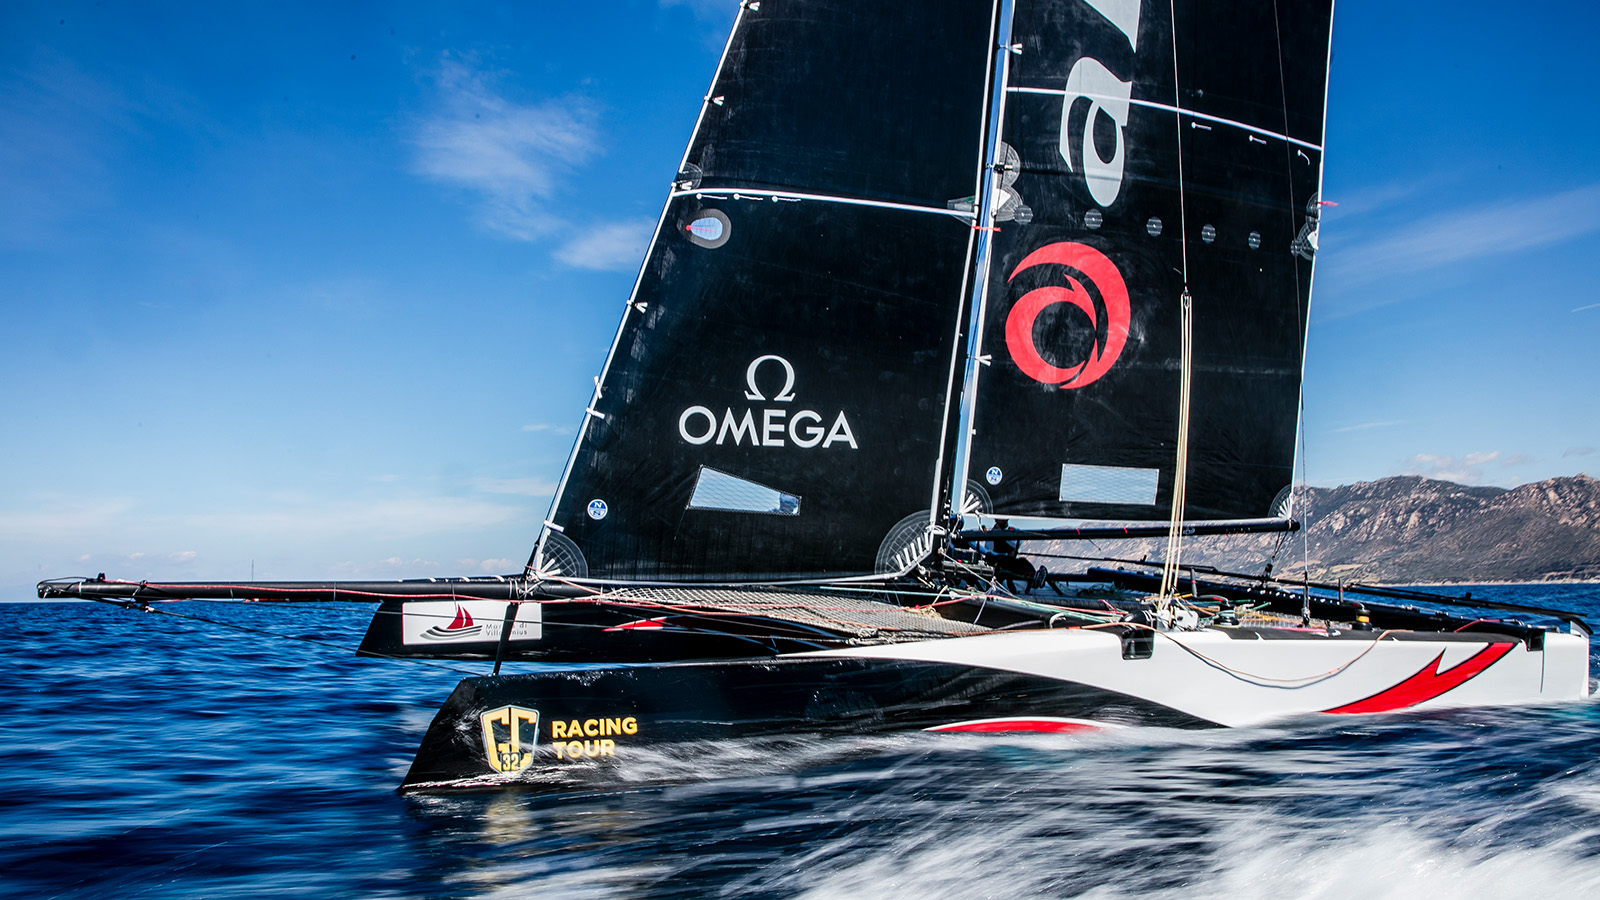 OMEGA supports sailors from all levels - Single - 62271